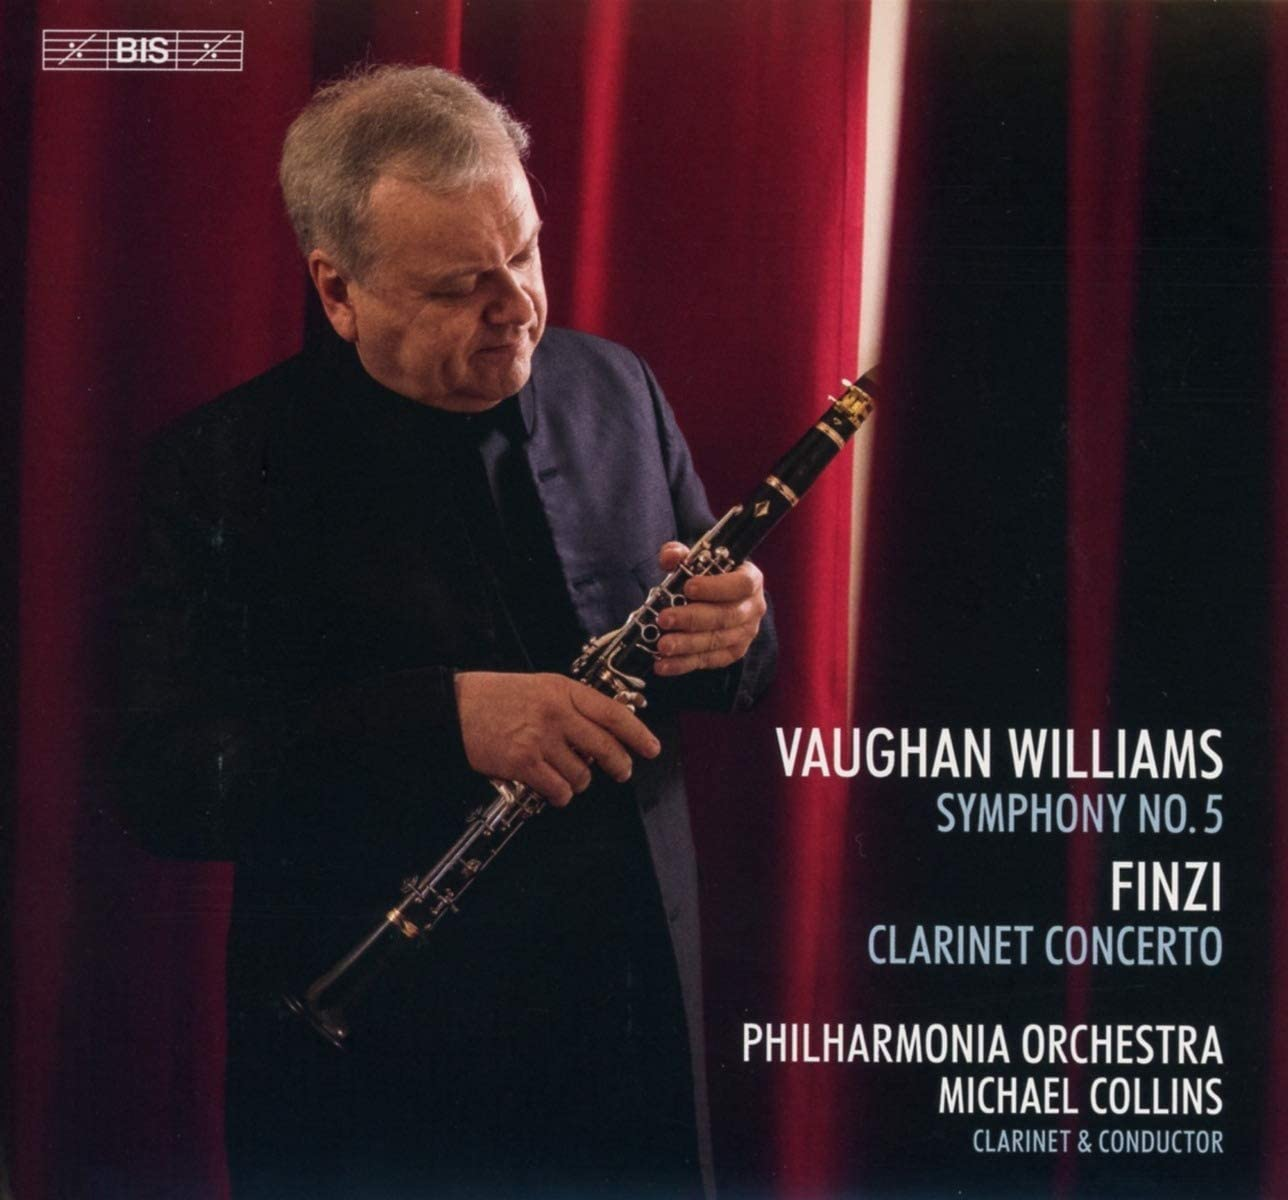 Review of FINZI Clarinet Concerto VAUGHAN WILLIAMS Symphony No 5 (Michael Collins)